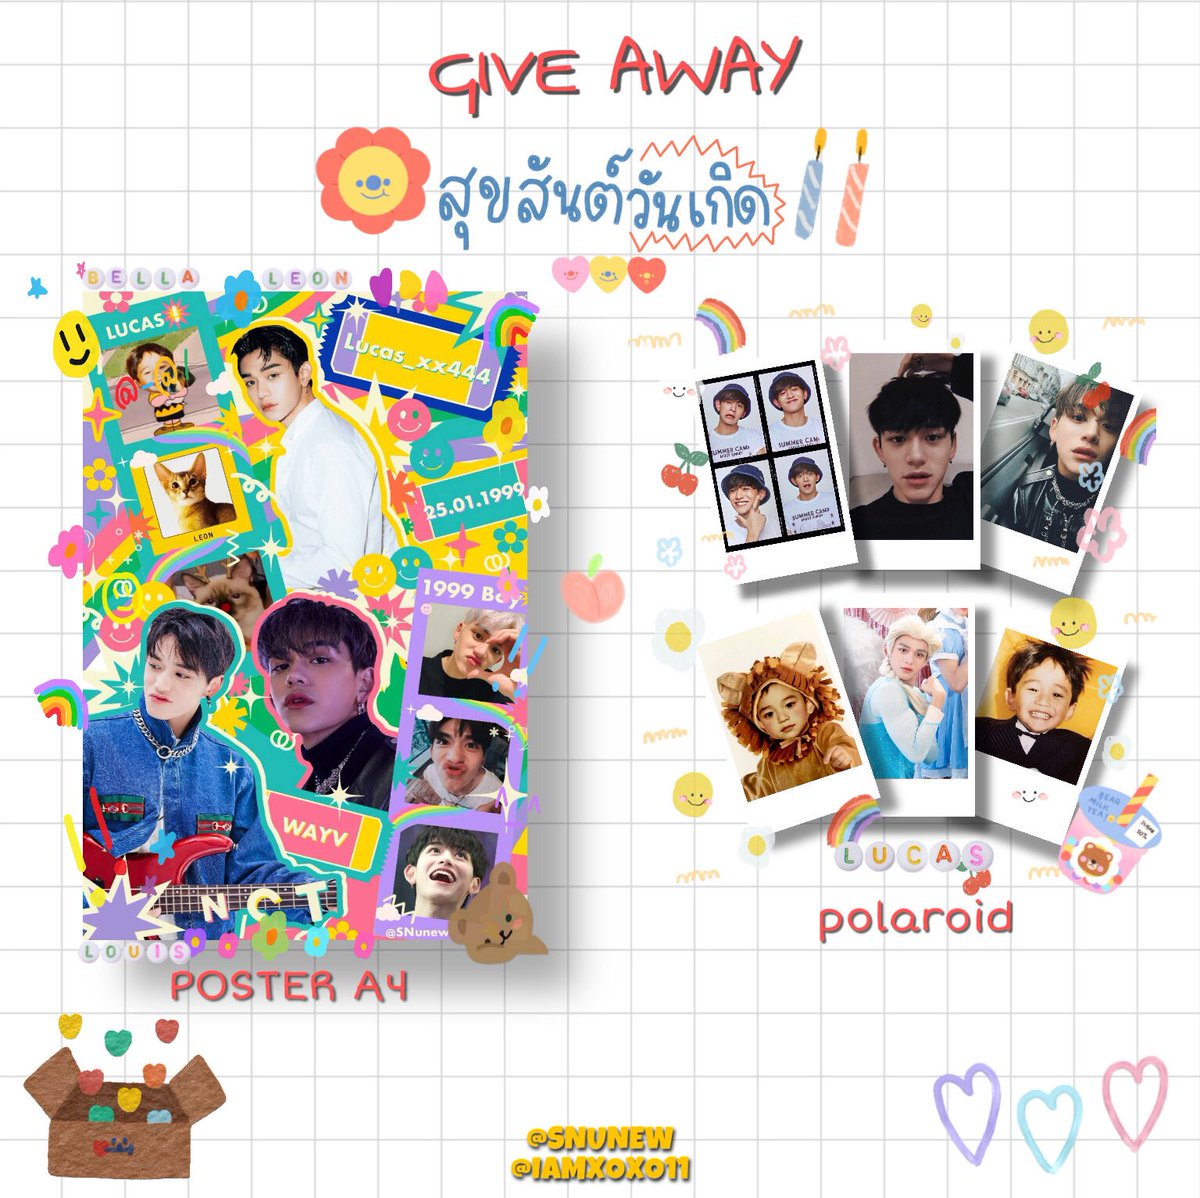 "ꕀ please retweet 。♡ 🌻 GIVE AWAY  🌻 "" HAPPY LUCAS DAY 🎂 "" 📍at Eattention Please  (Round 1)  🗓 07.03.2021  🦁 Poster A4 🦁Polaroid:  #ShineBrightLikeLUCAS2021 #theillumerence_LC #HappyLucasDay #LUCAS"